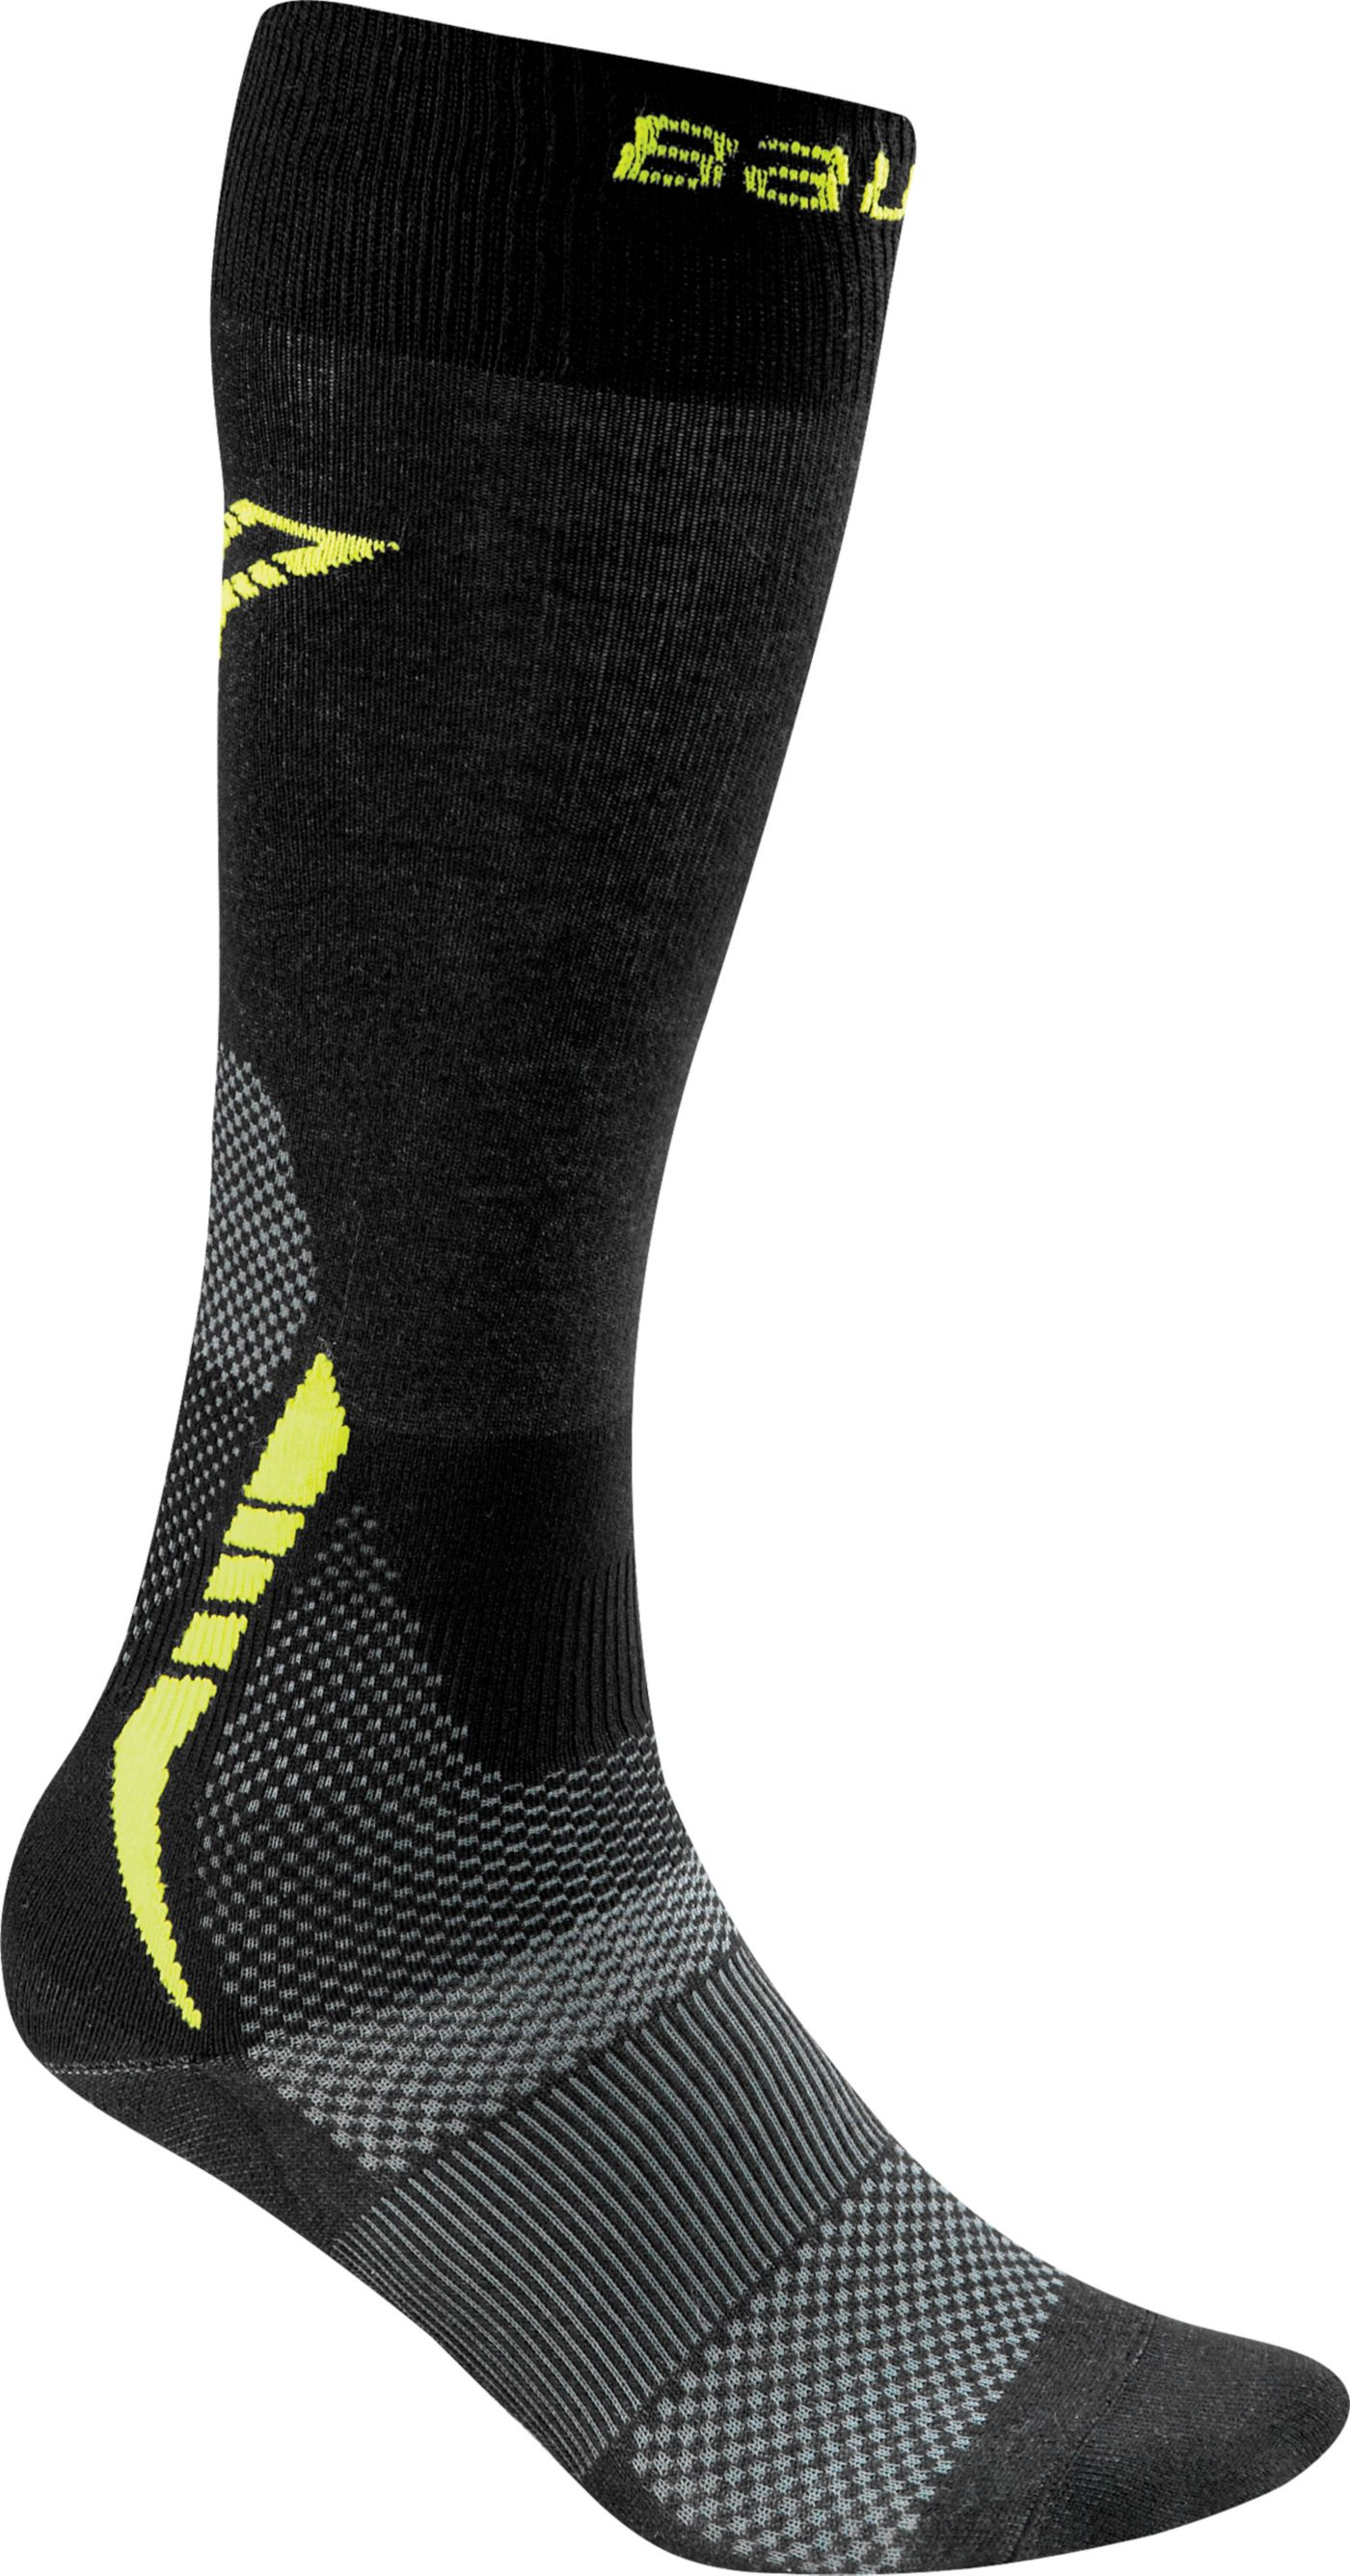 Bauer Premium Tall Hockey Skate Socks